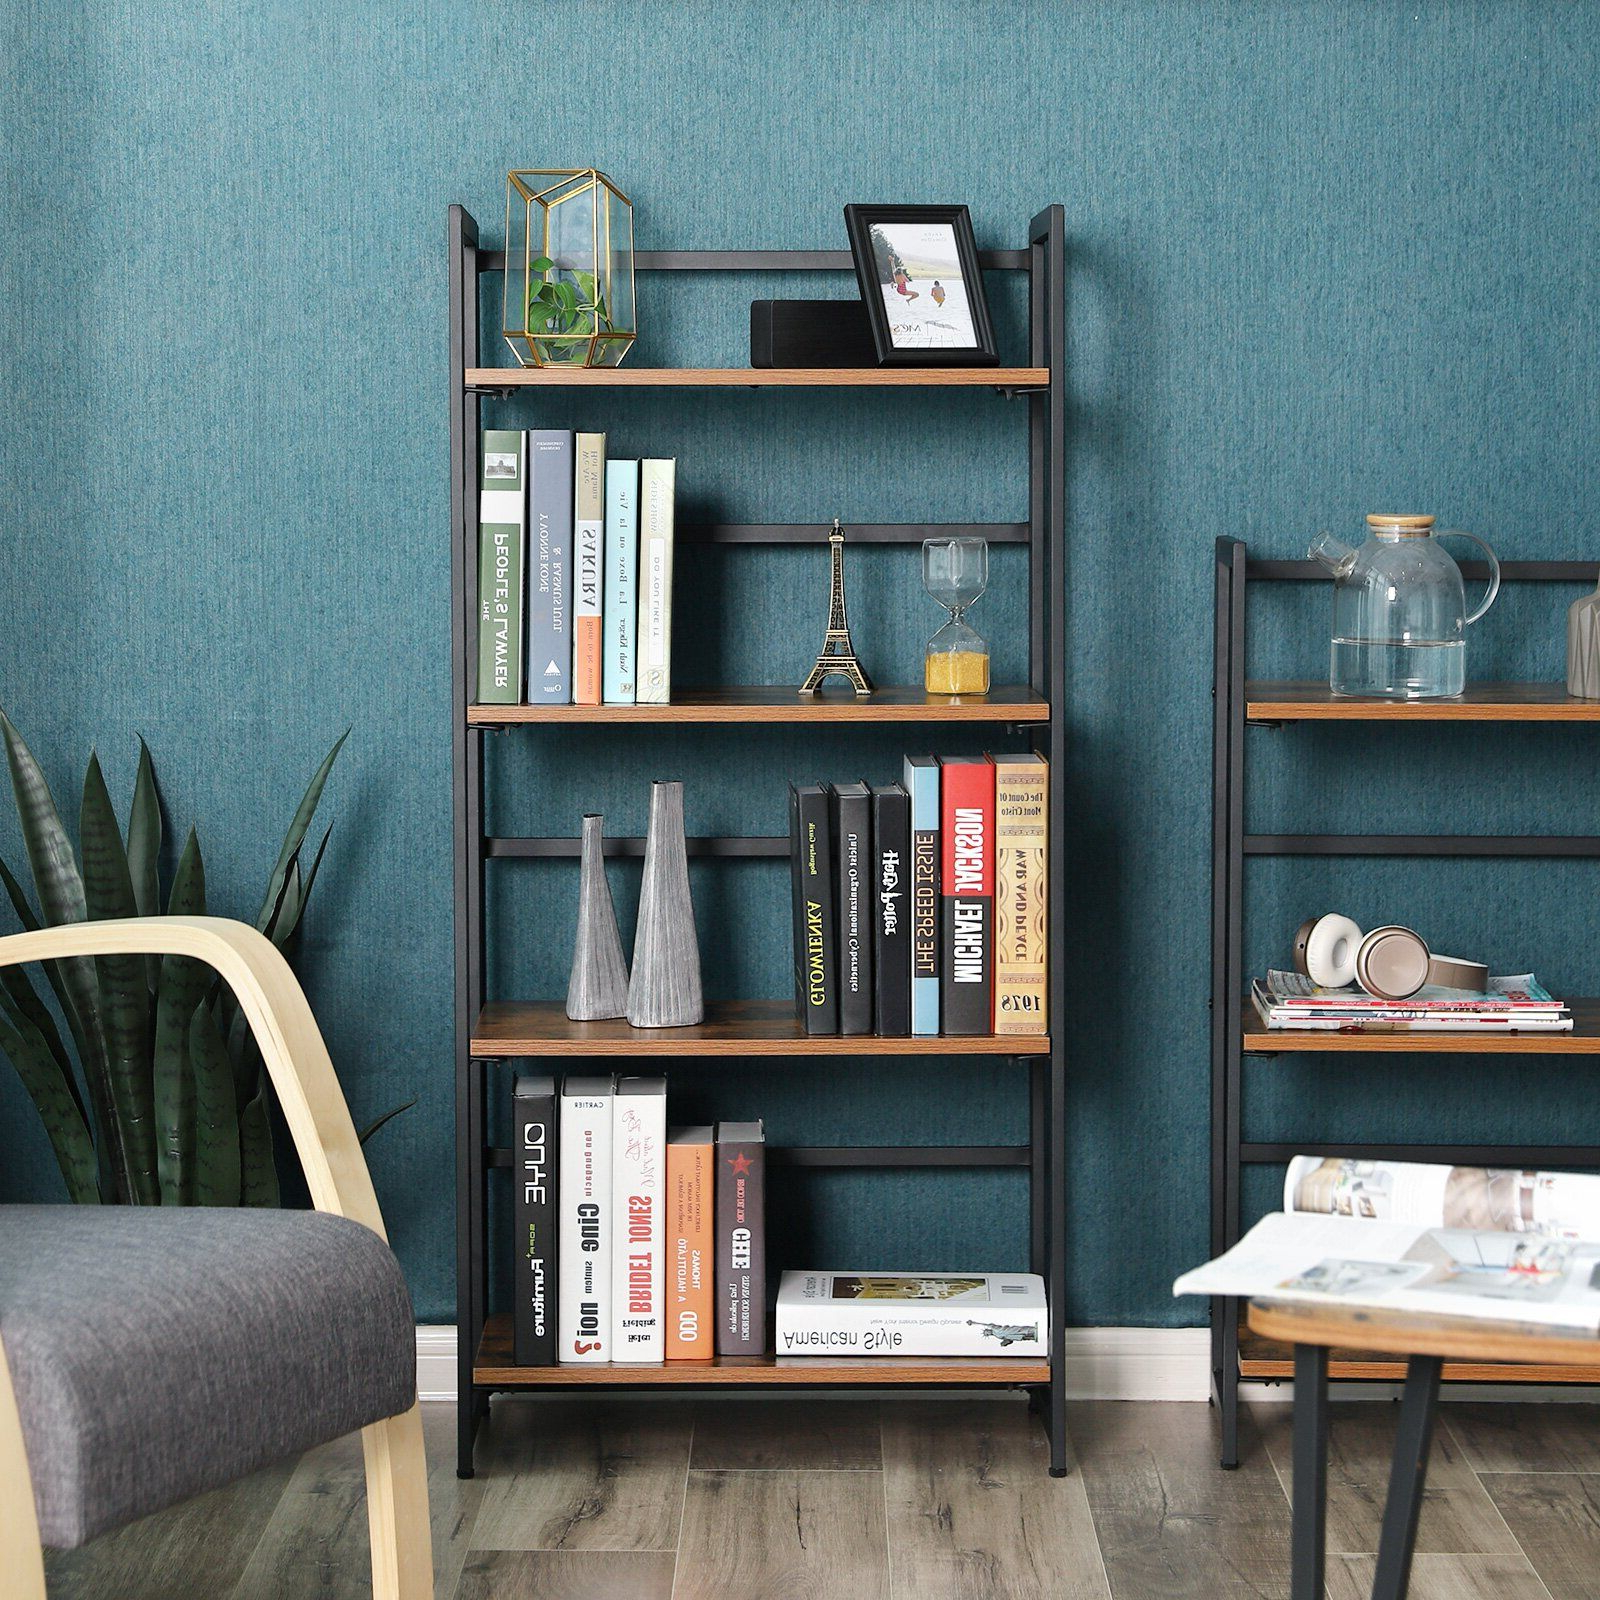 Saskia Etagere Bookcases Intended For 2020 Parkins 4 Tier Portable Etagere Bookcase In (View 7 of 20)